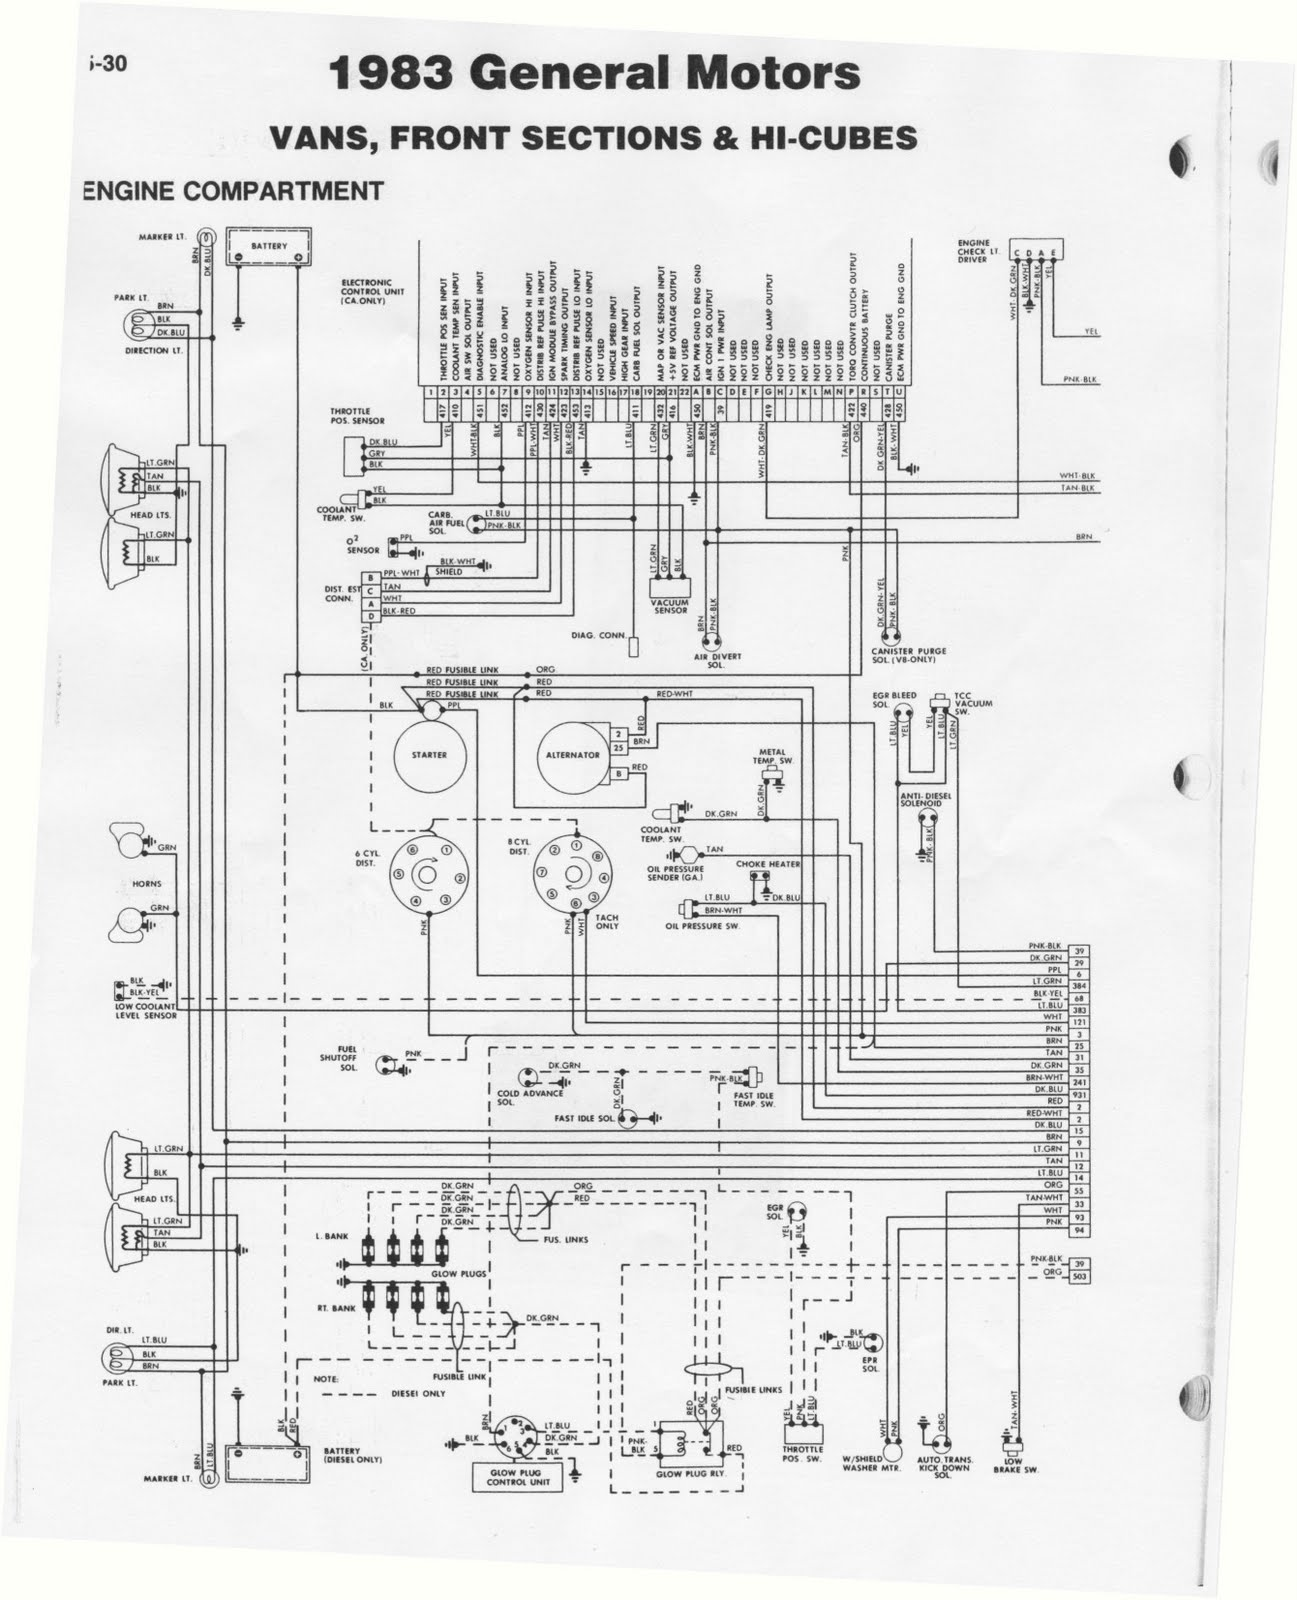 1990 fleetwood southwind rv wiring diagram free picture wiring diagram 1990 fleetwood pace arrow wiring [ 1297 x 1600 Pixel ]